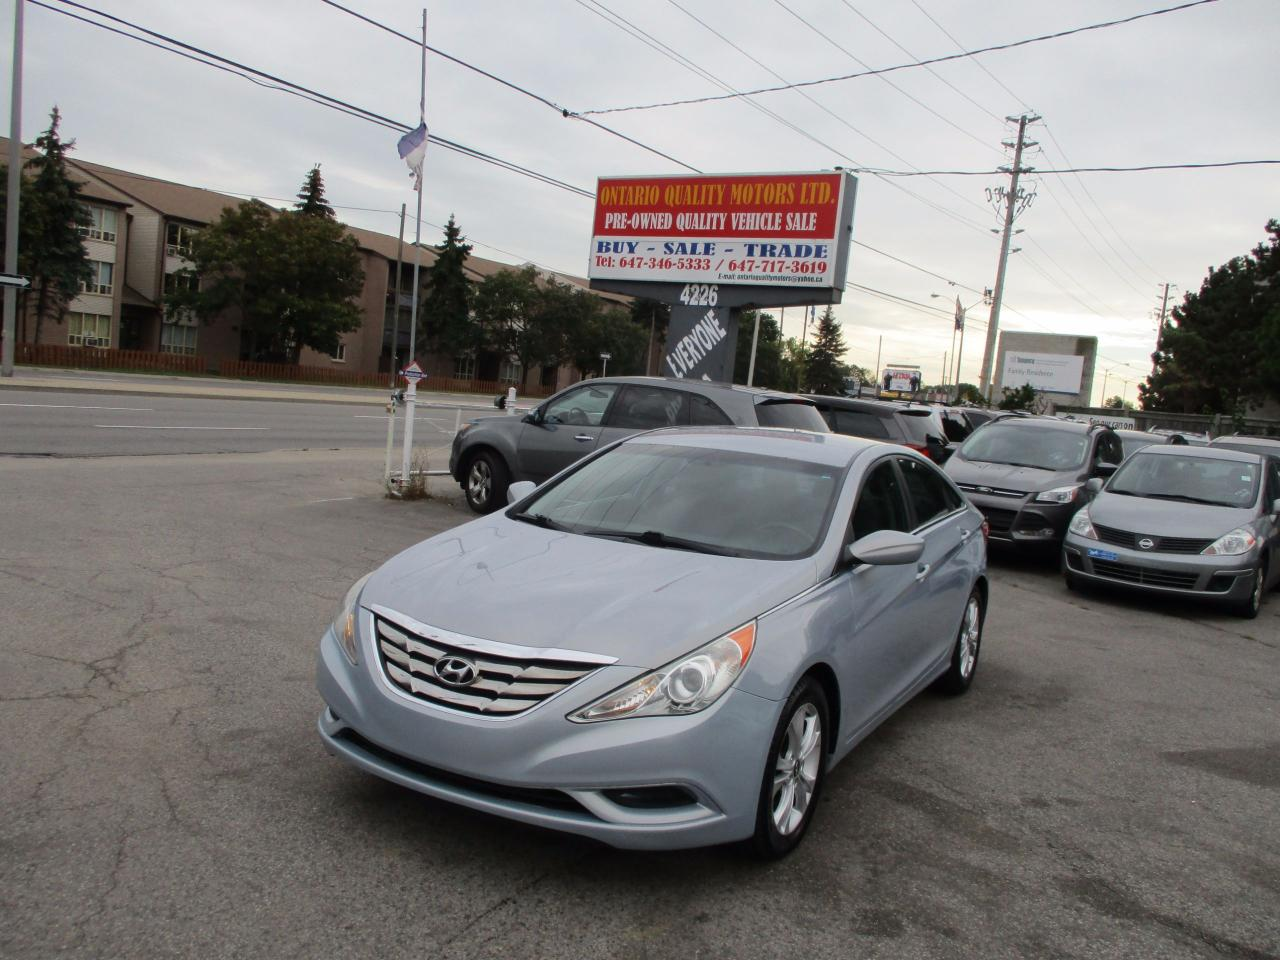 used 2011 hyundai sonata gls for sale in scarborough. Black Bedroom Furniture Sets. Home Design Ideas